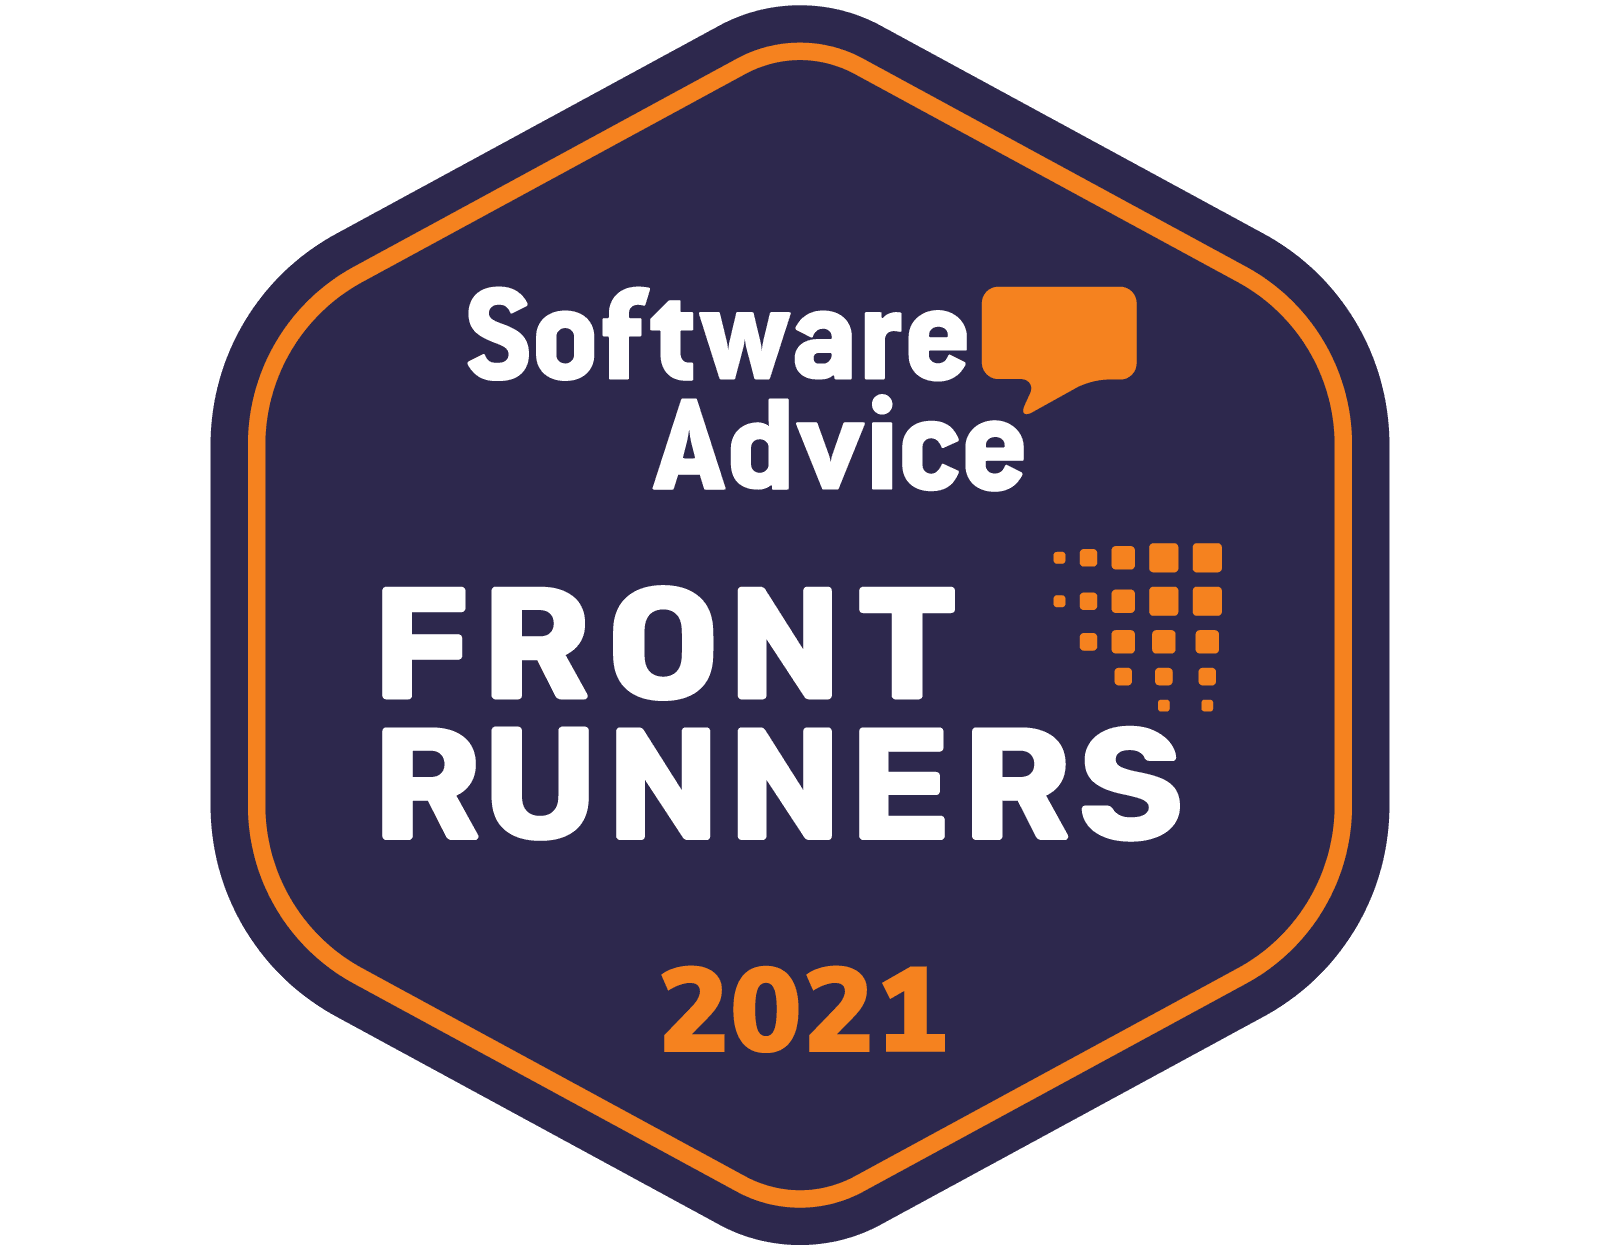 software advice front runner badge 2021, gartner